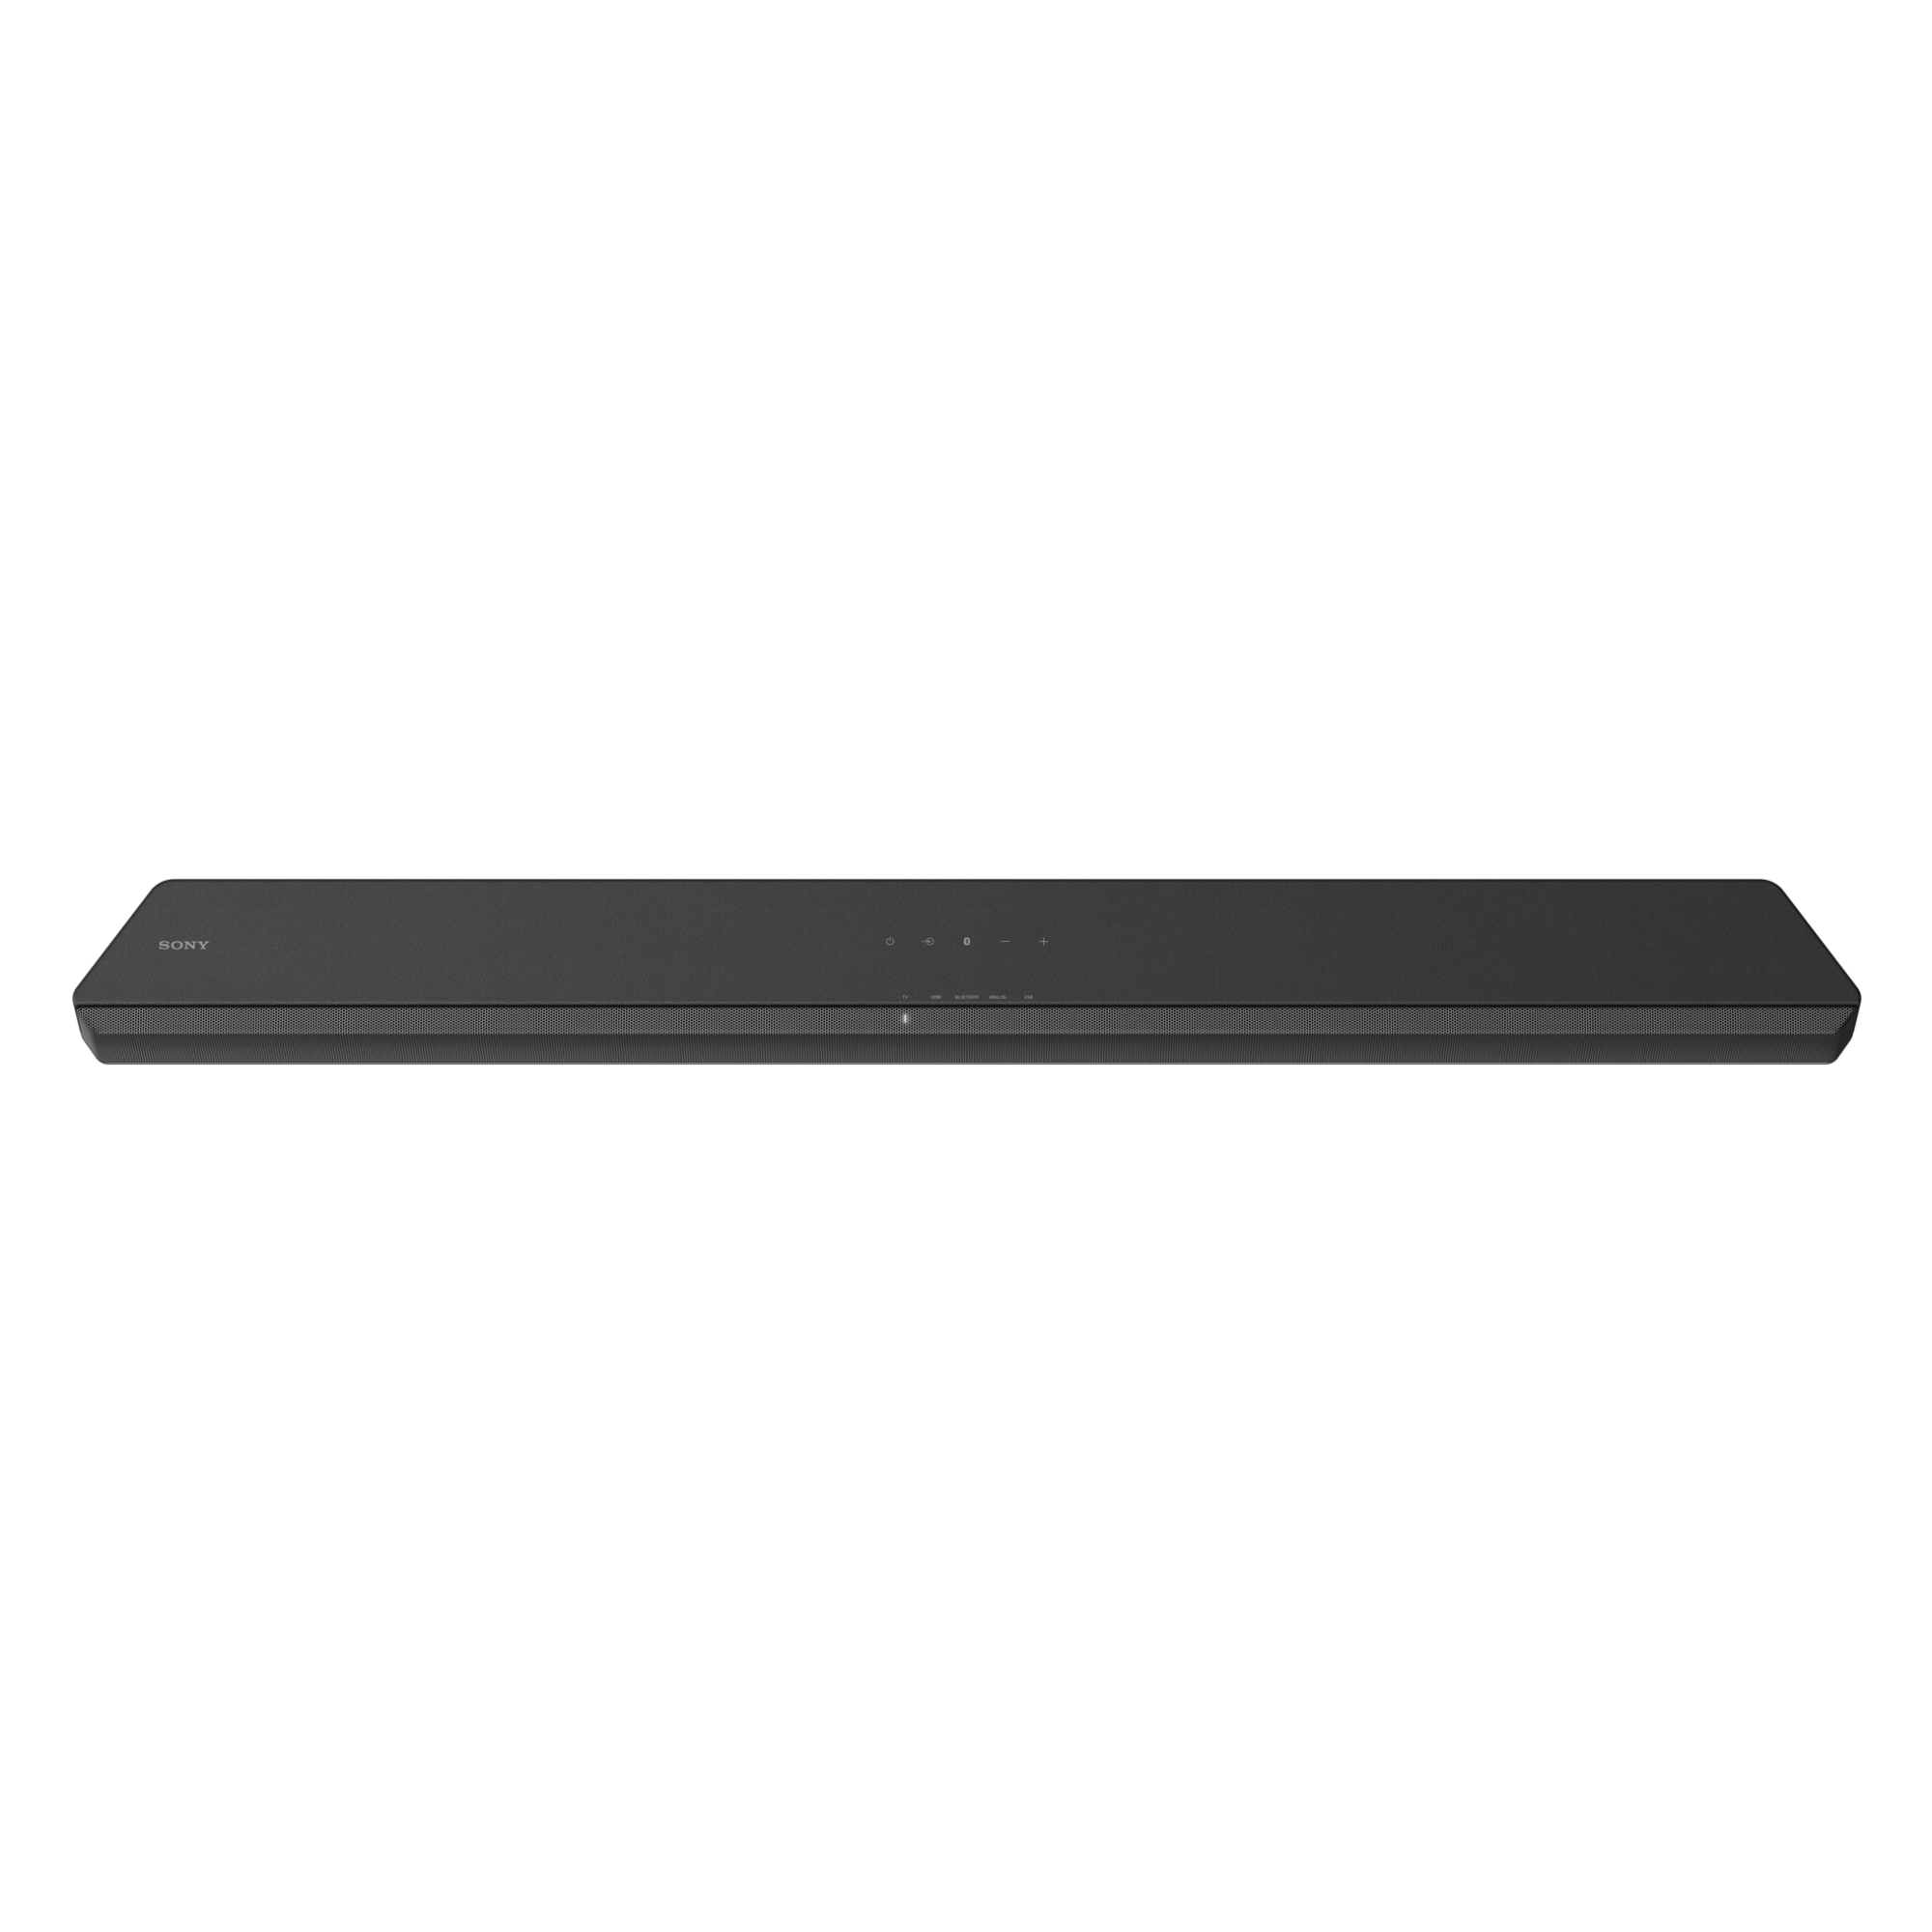 HT-X9000F 2.1ch Dolby Atmos / DTS:X Sound bar with Bluetooth, , product-image